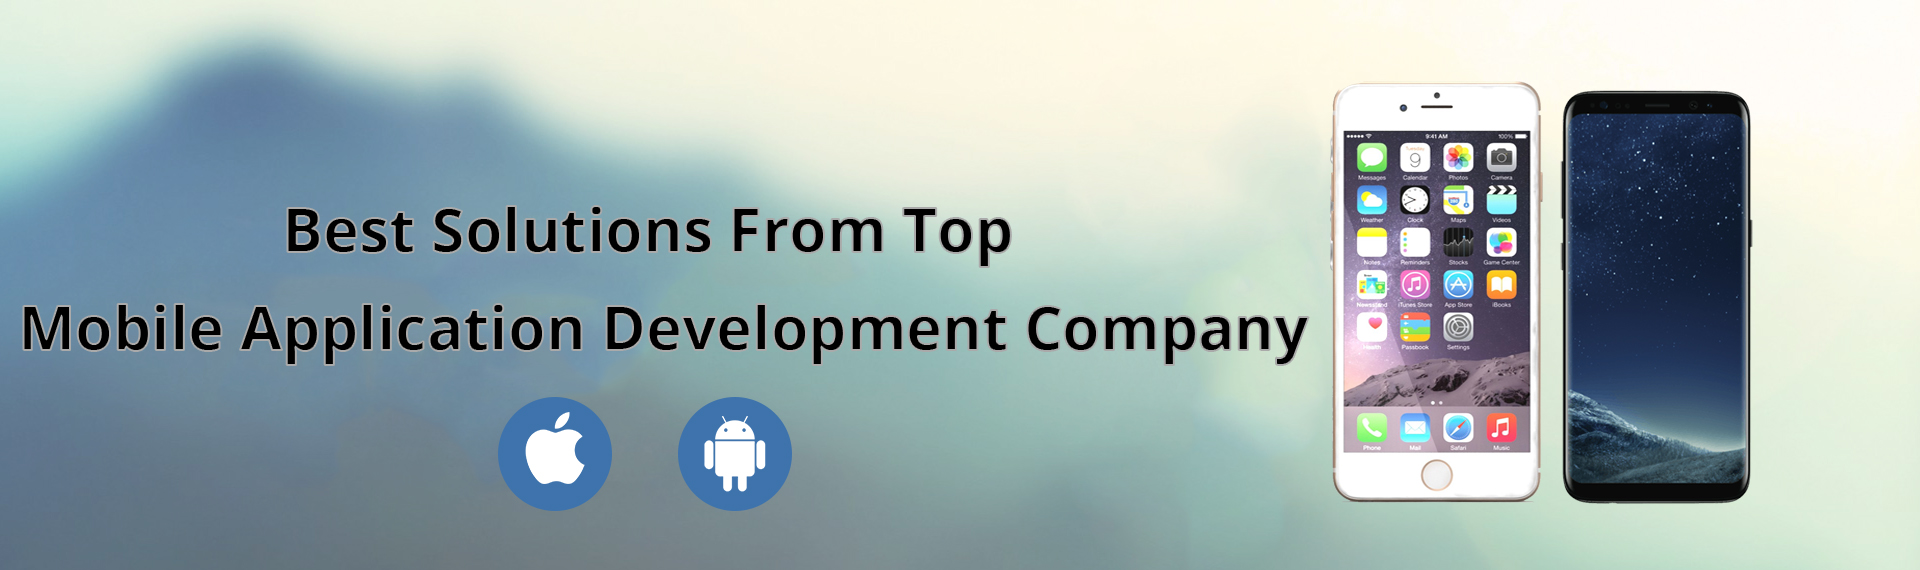 Best Solutions From Top Mobile Application Development Company